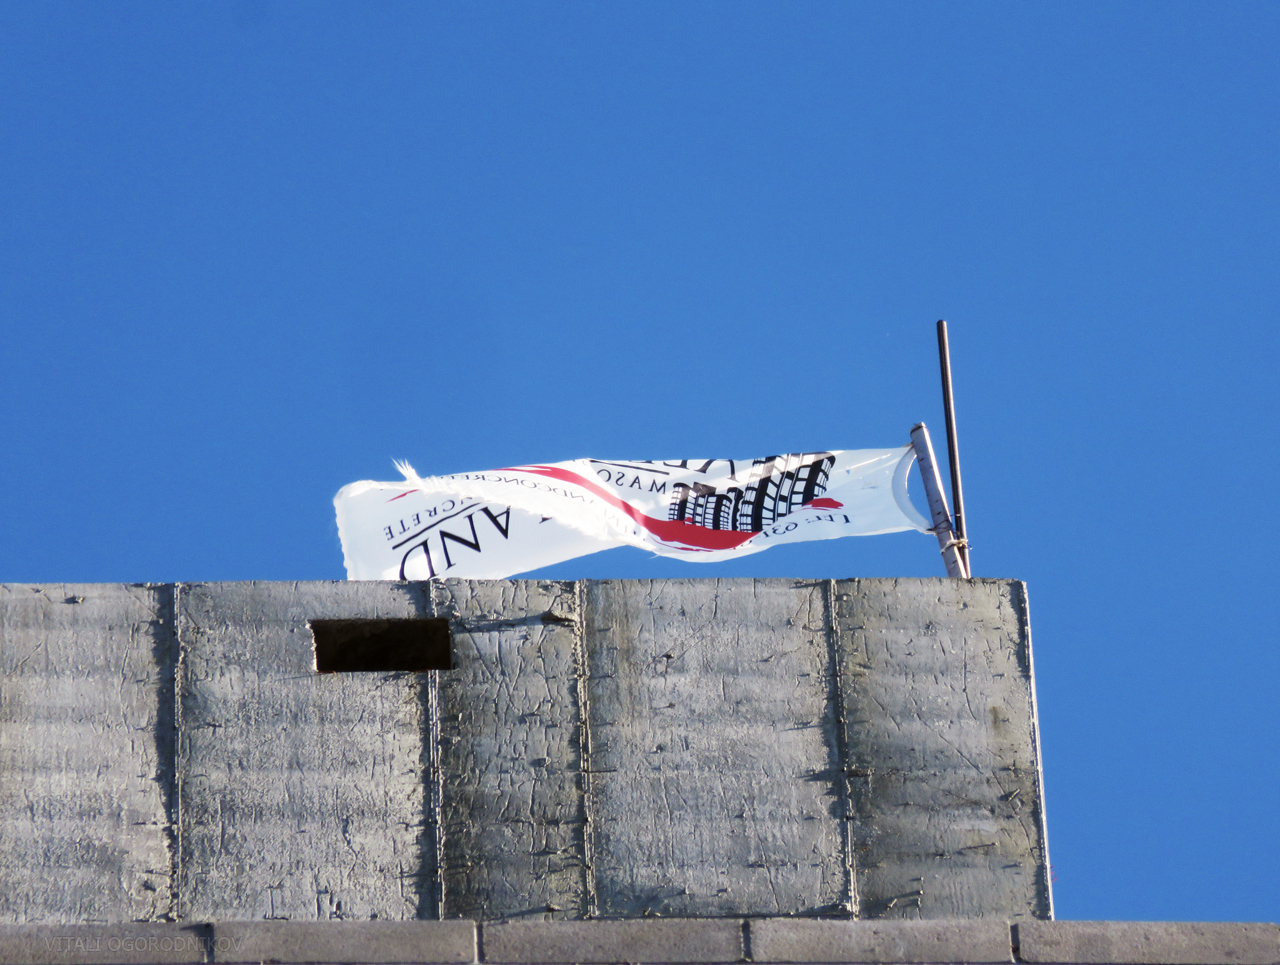 Topping-out flag at the pinnacle